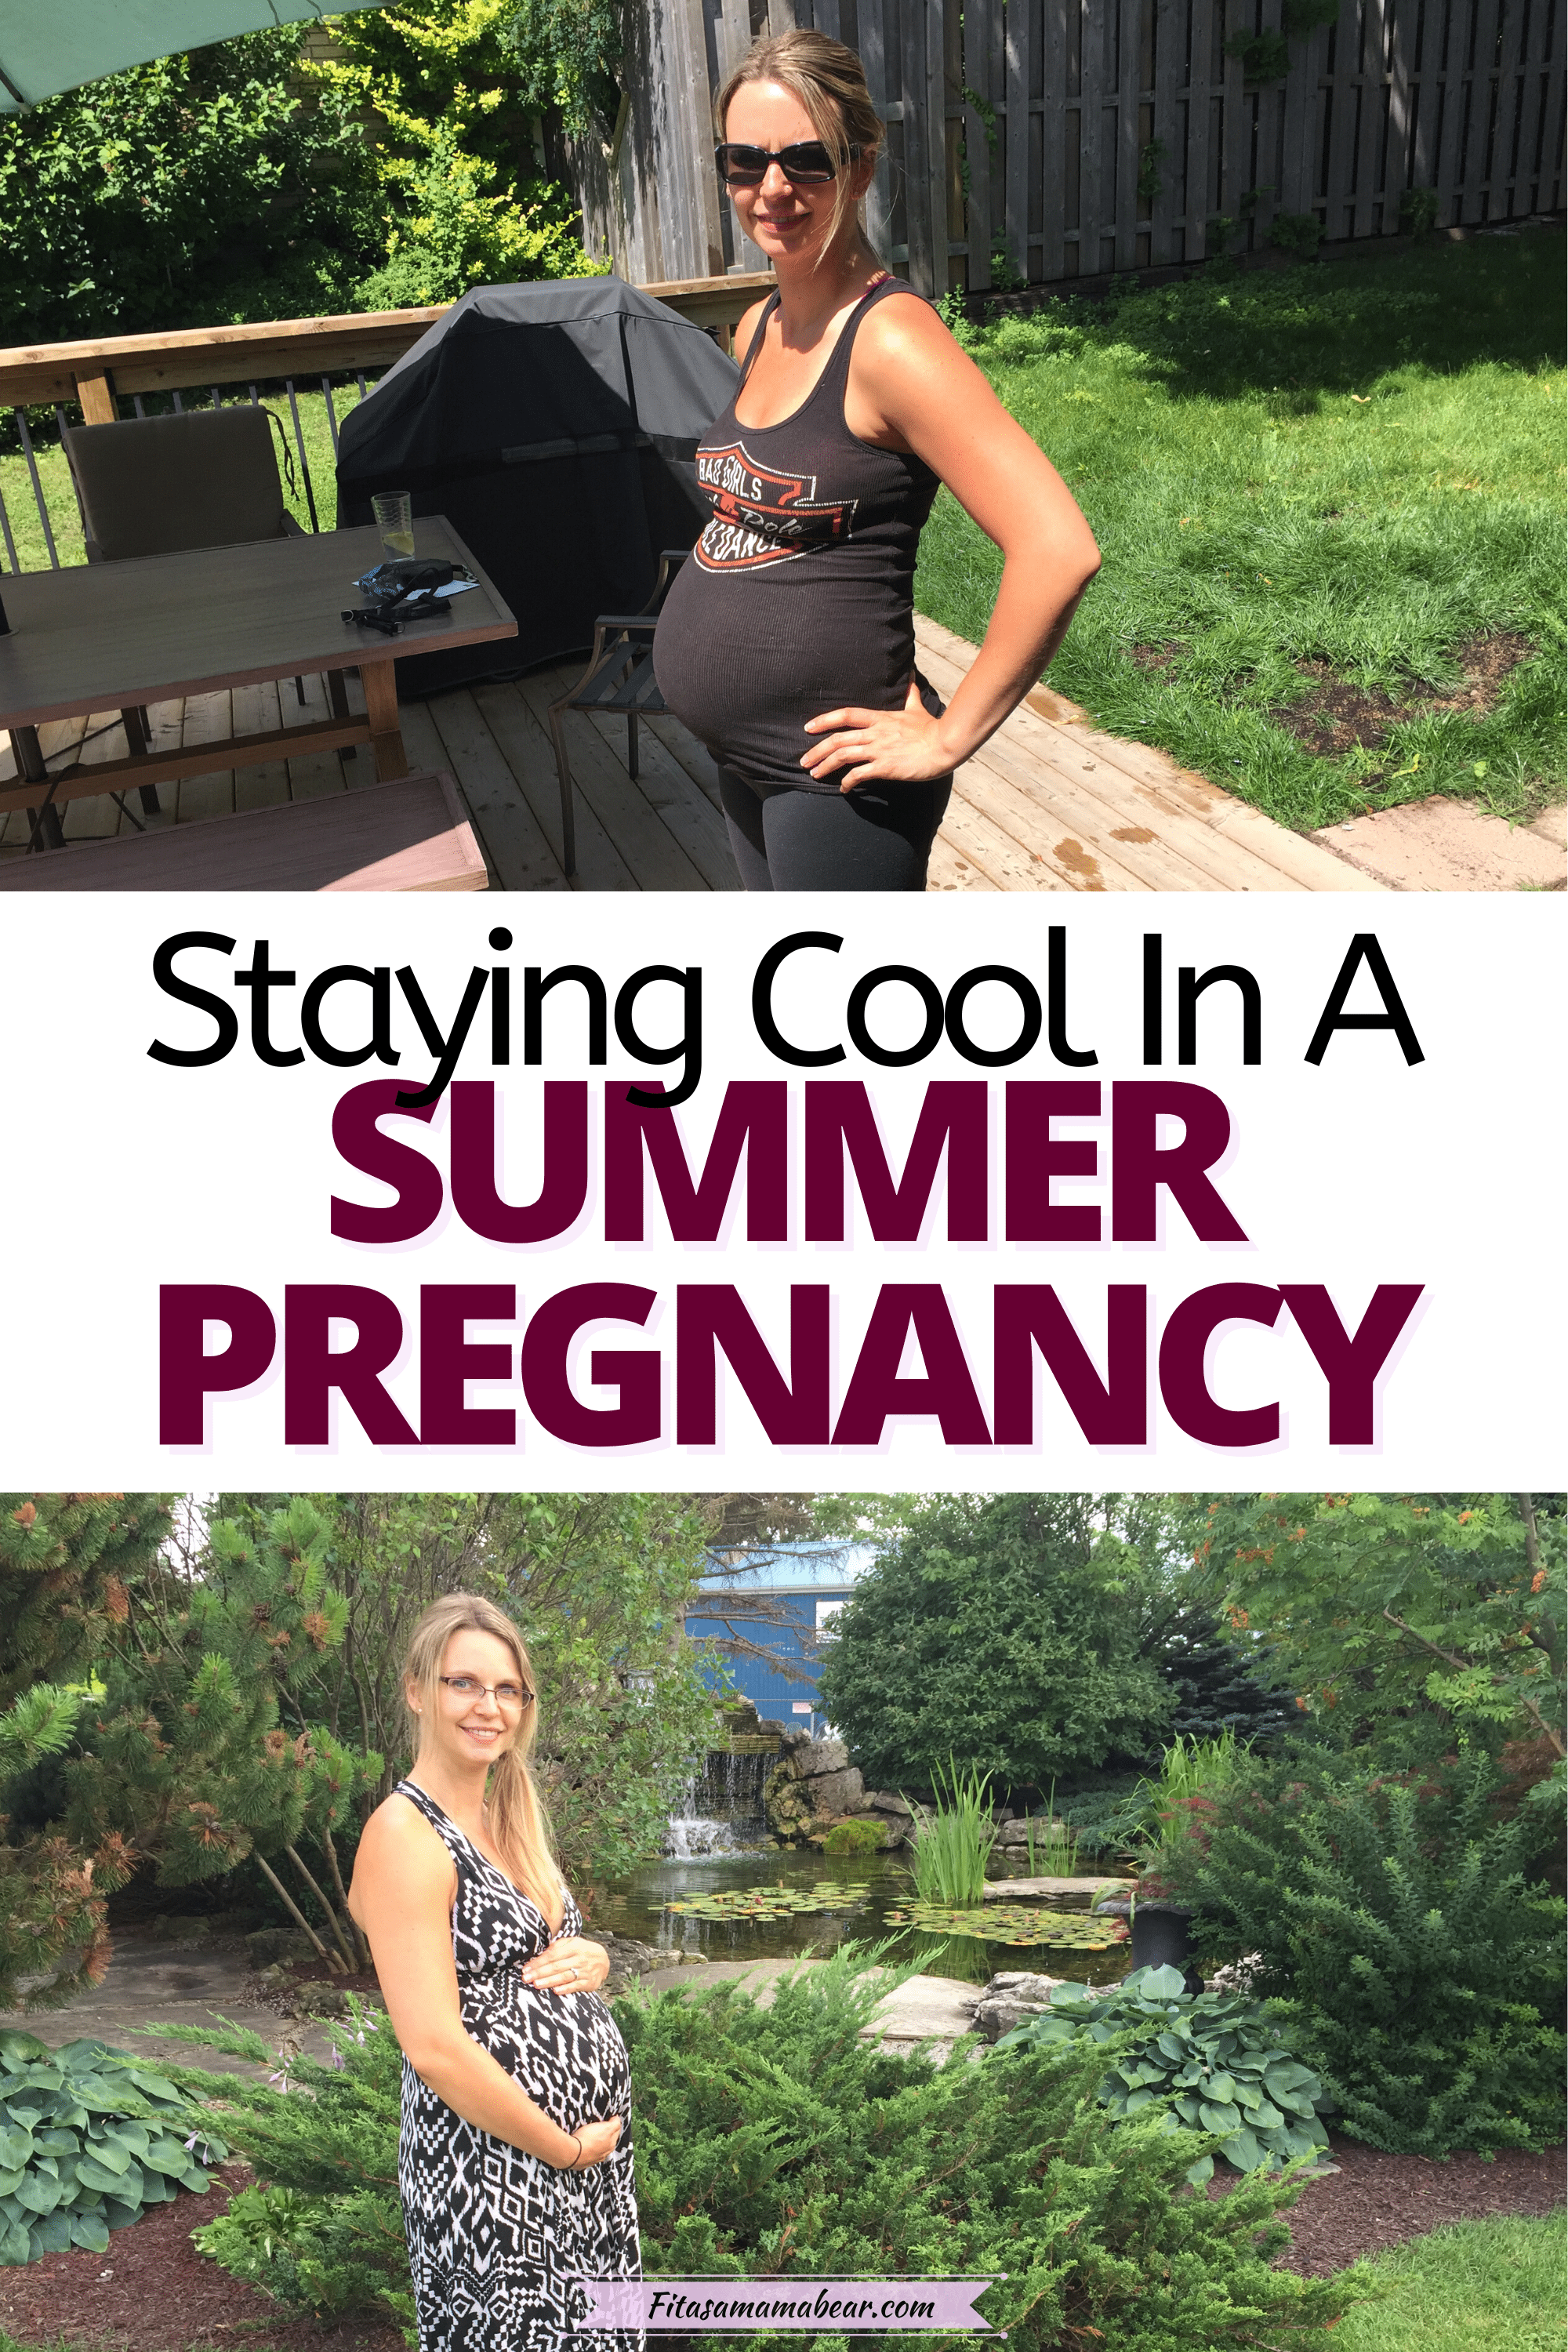 Pinterest image with text: two images of a pregnant woman outside in the summer